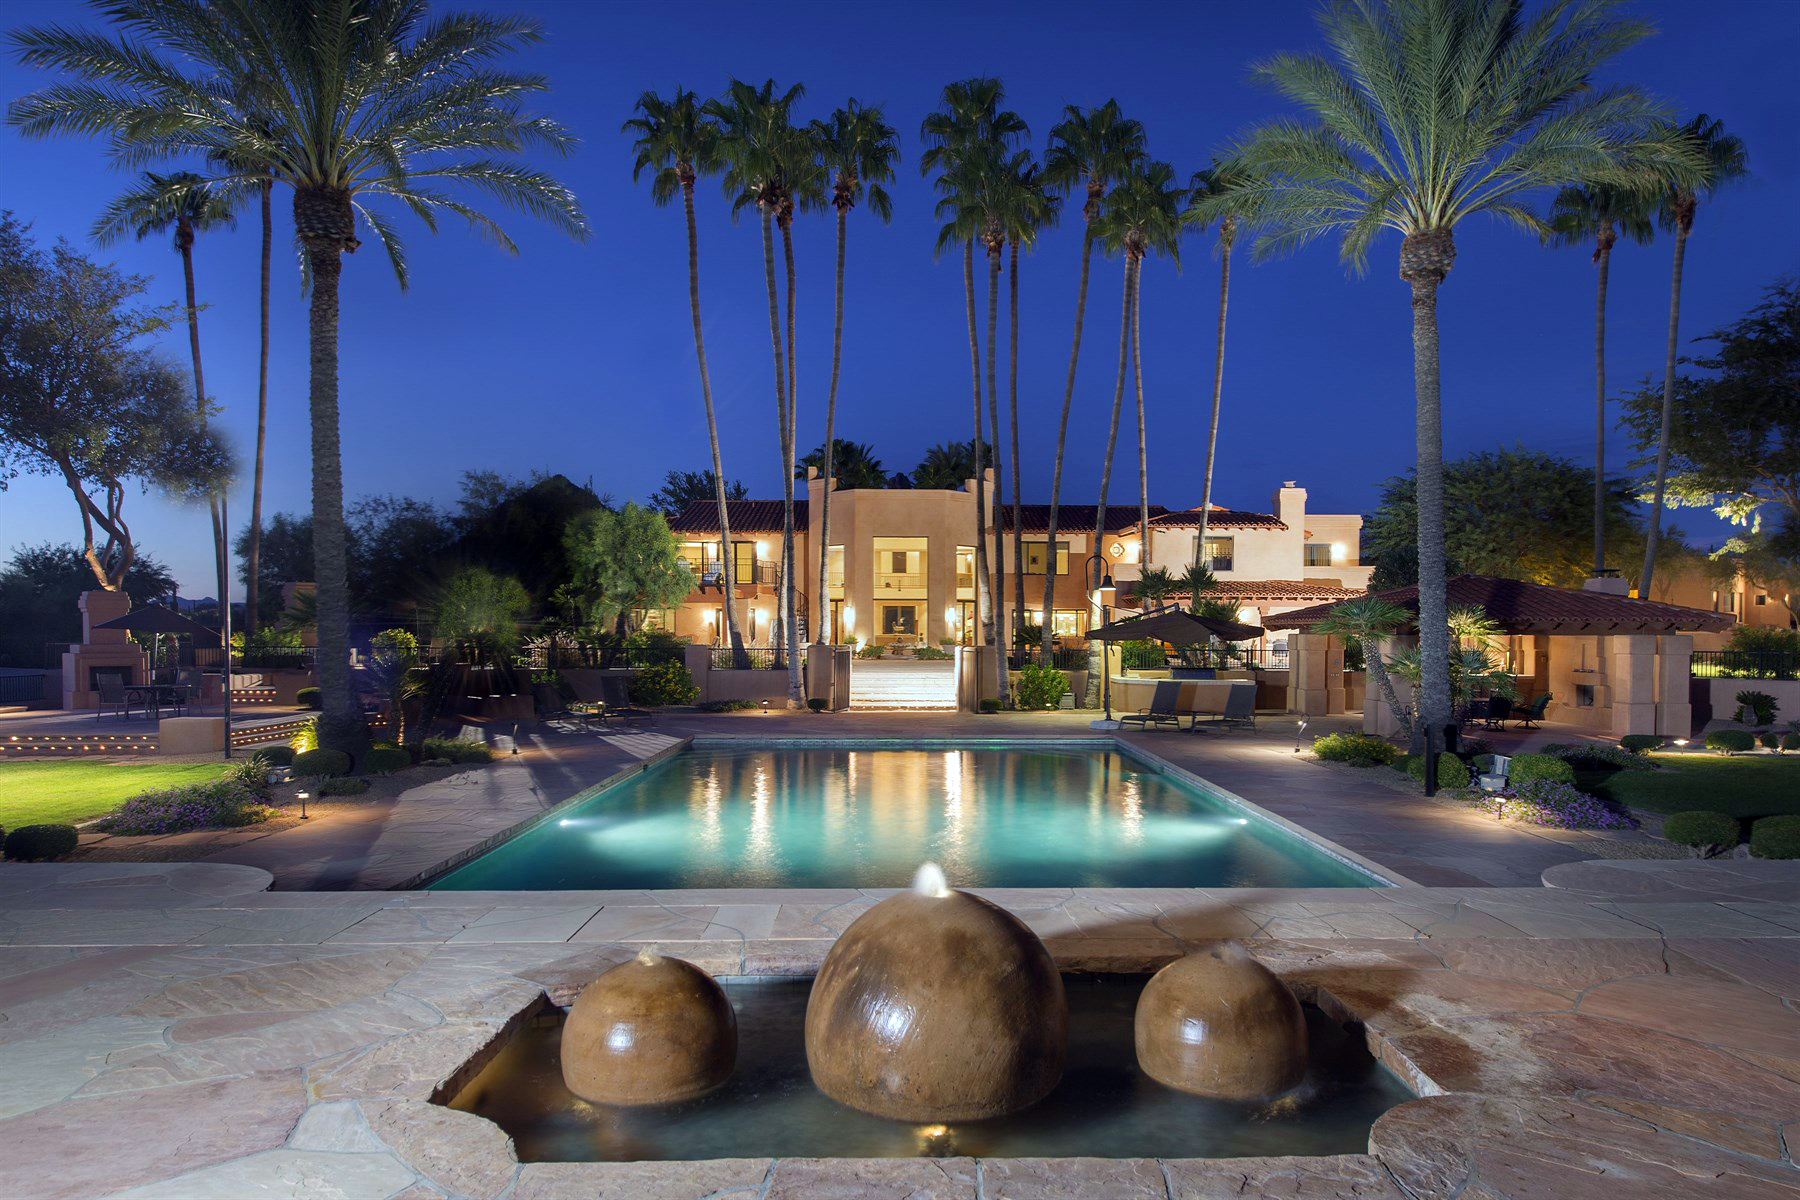 Maison unifamiliale pour l Vente à Equestrian Luxury Living on 12 Glorious Acres Representing Oasis Ranch 10015 E Happy Valley Rd Scottsdale, Arizona 85255 États-Unis